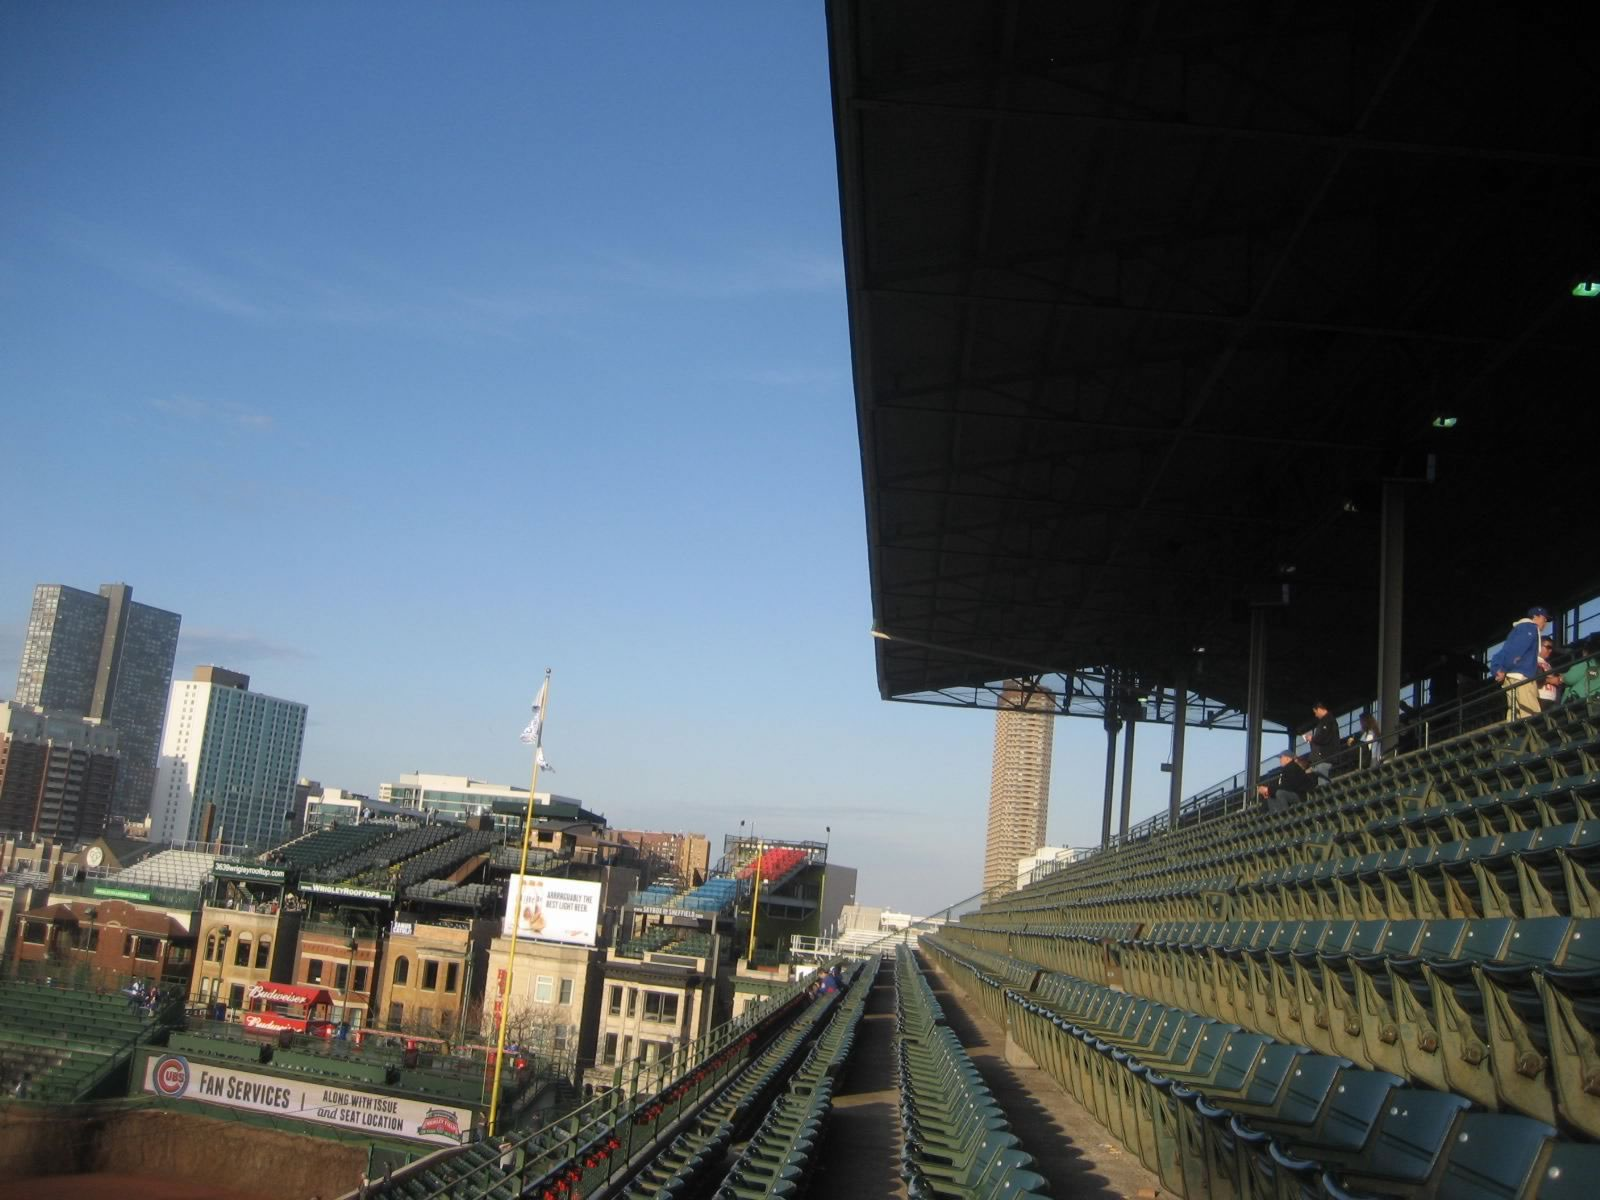 Wrigley Field roof cover